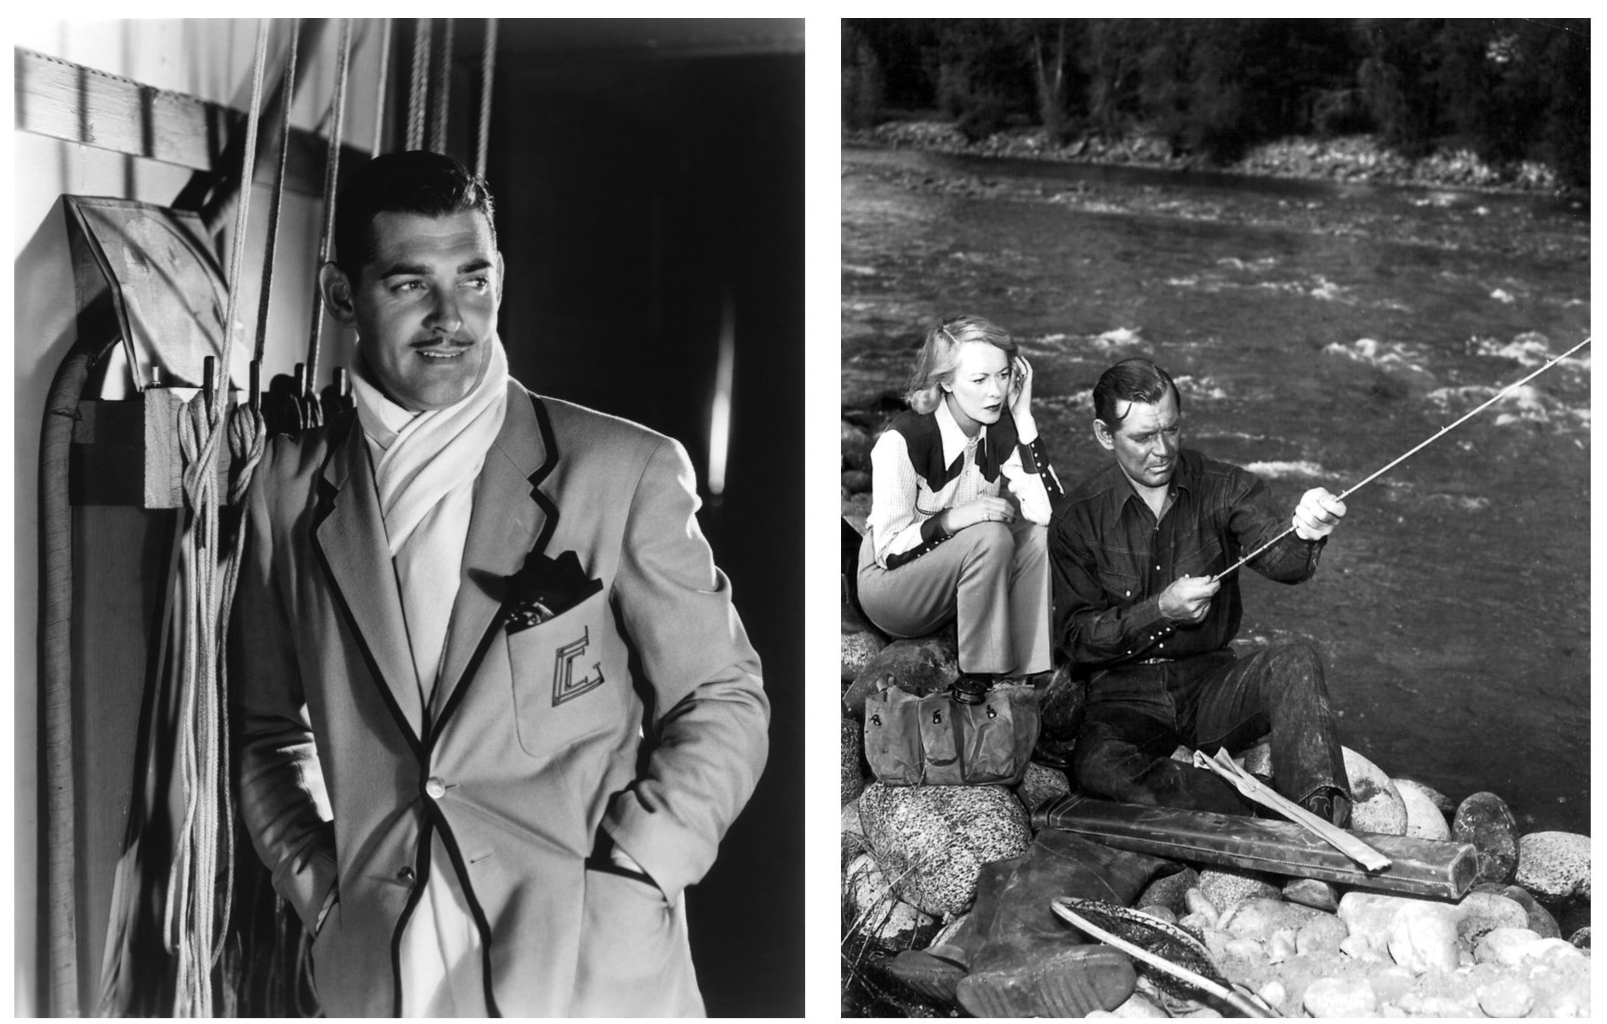 Studio publicity shot of Gable (left) and Gable and wife Sylvia fishing in Colorado during filming of Across the Wide Missouri (right).